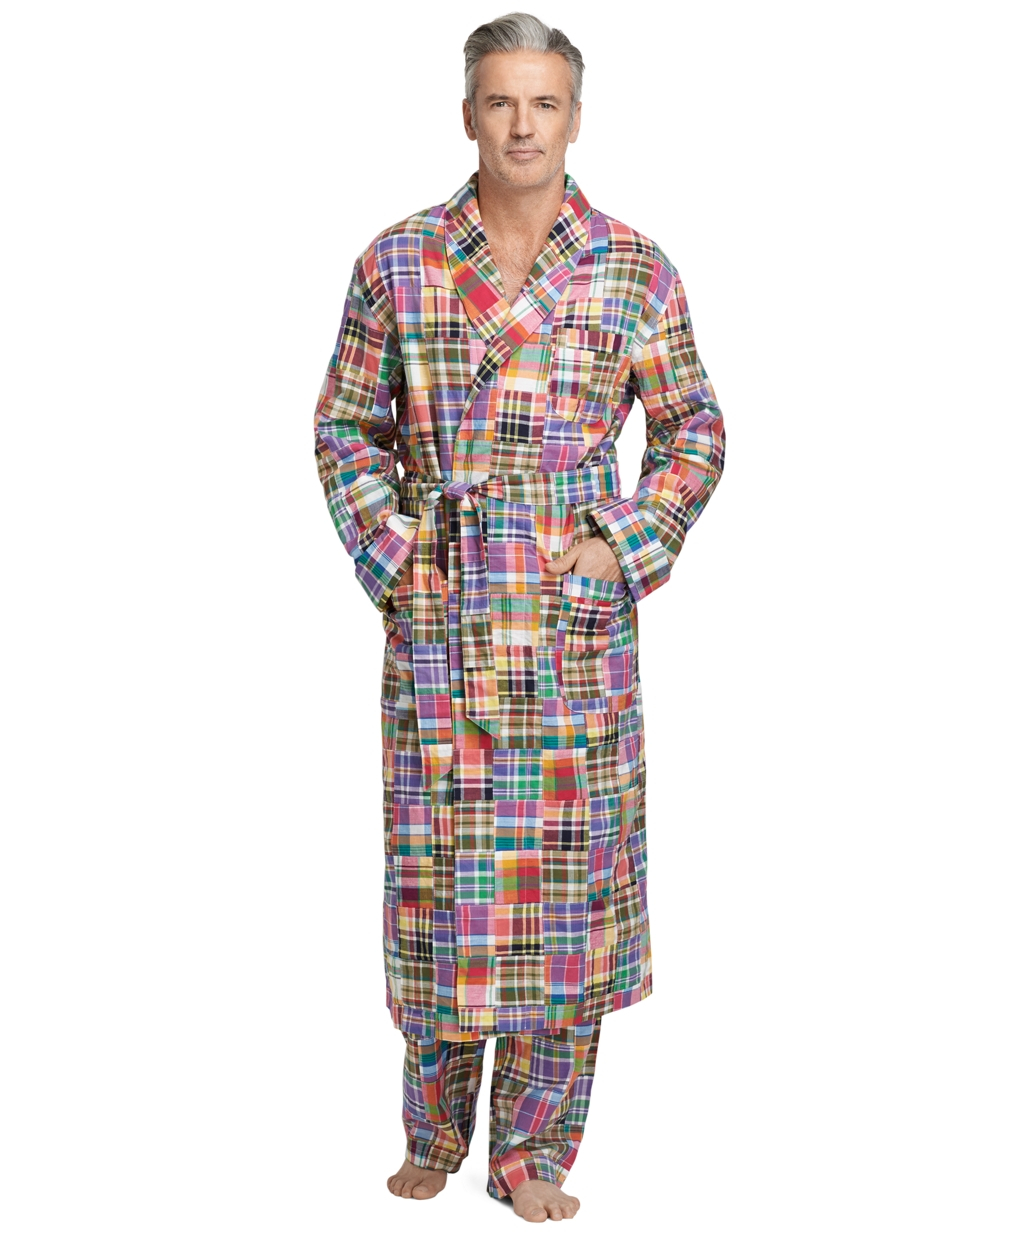 Lyst - Brooks Brothers Patchwork Madras Robe in Orange for Men 409317ff2